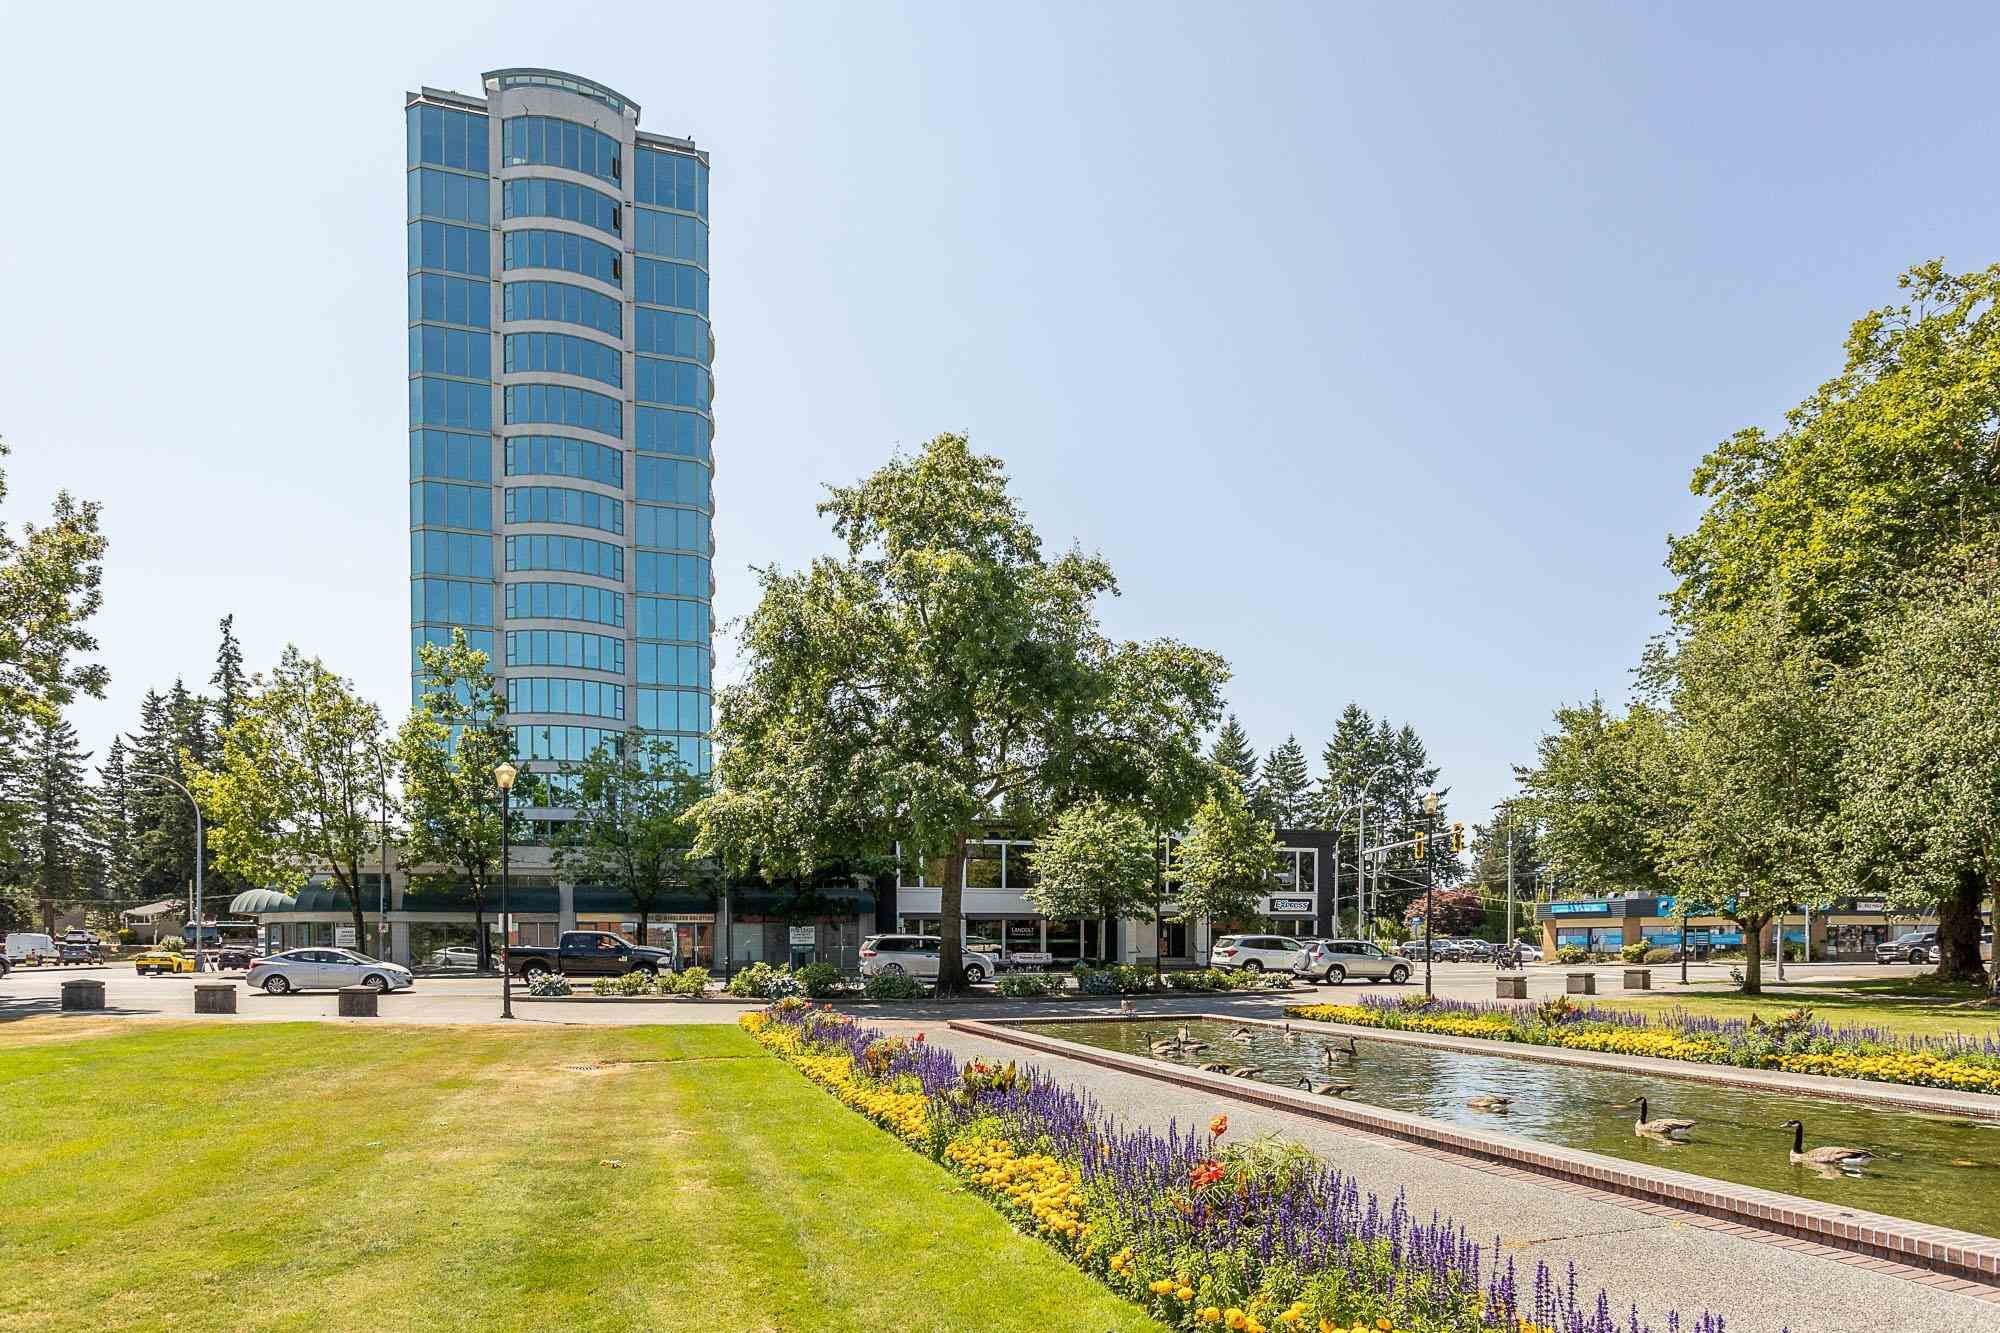 """Main Photo: 404 32330 SOUTH FRASER Way in Abbotsford: Central Abbotsford Condo for sale in """"Town Centre Tower"""" : MLS®# R2605342"""